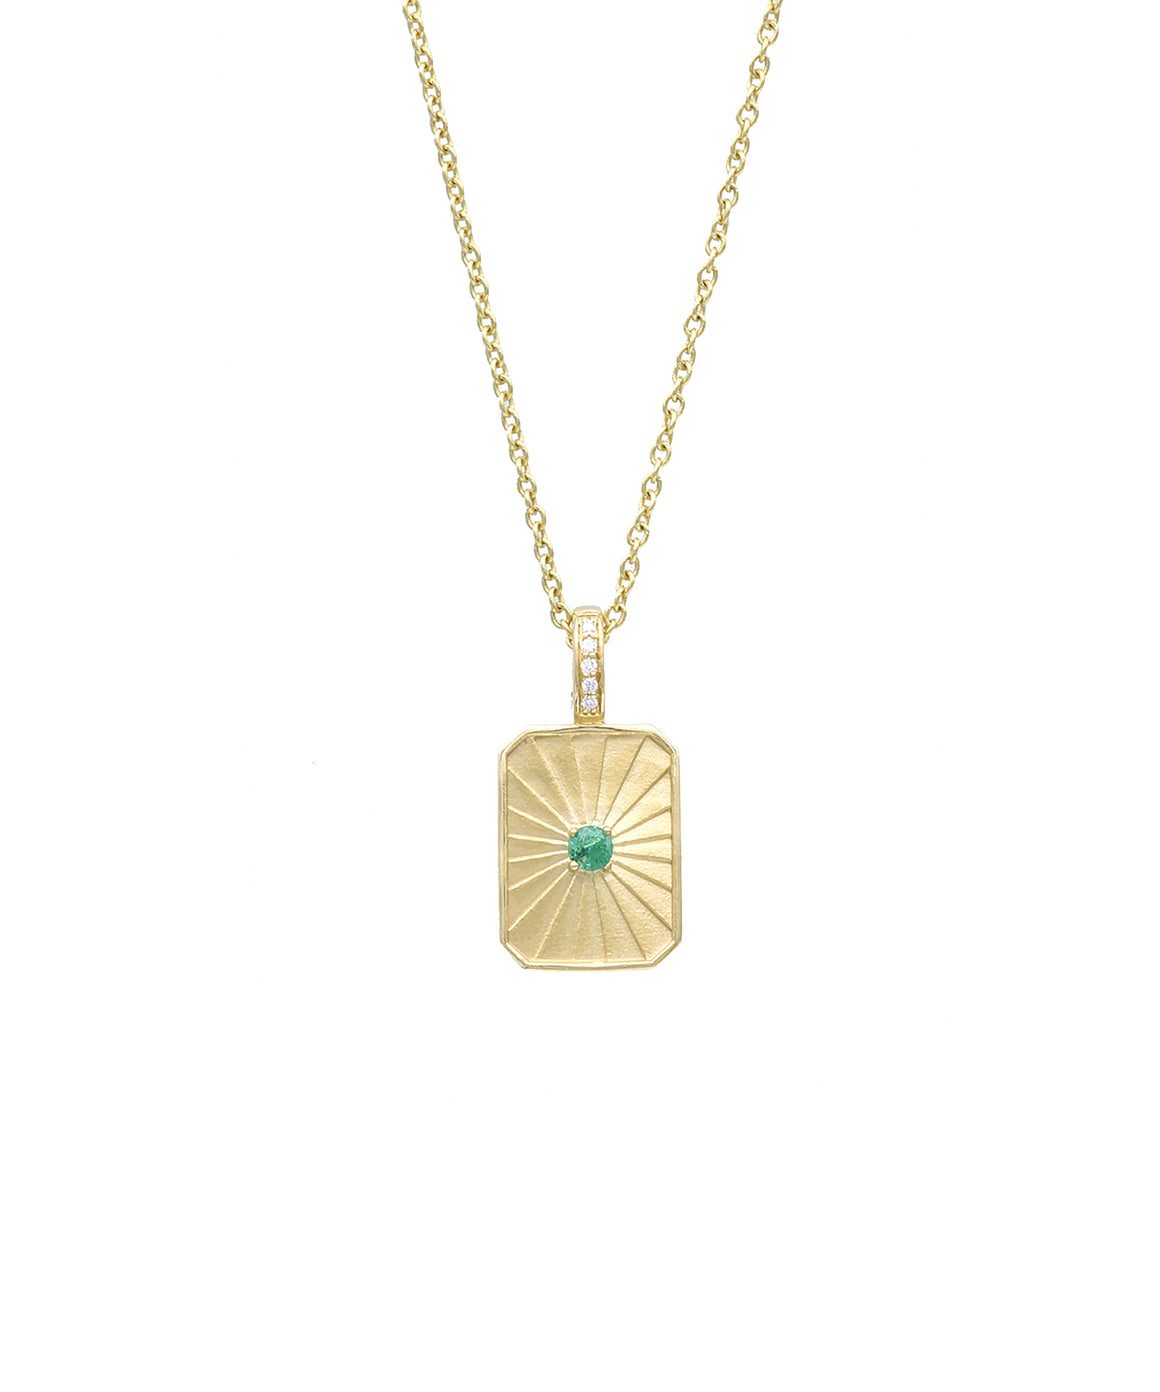 Rectangular Medallion with Emerald